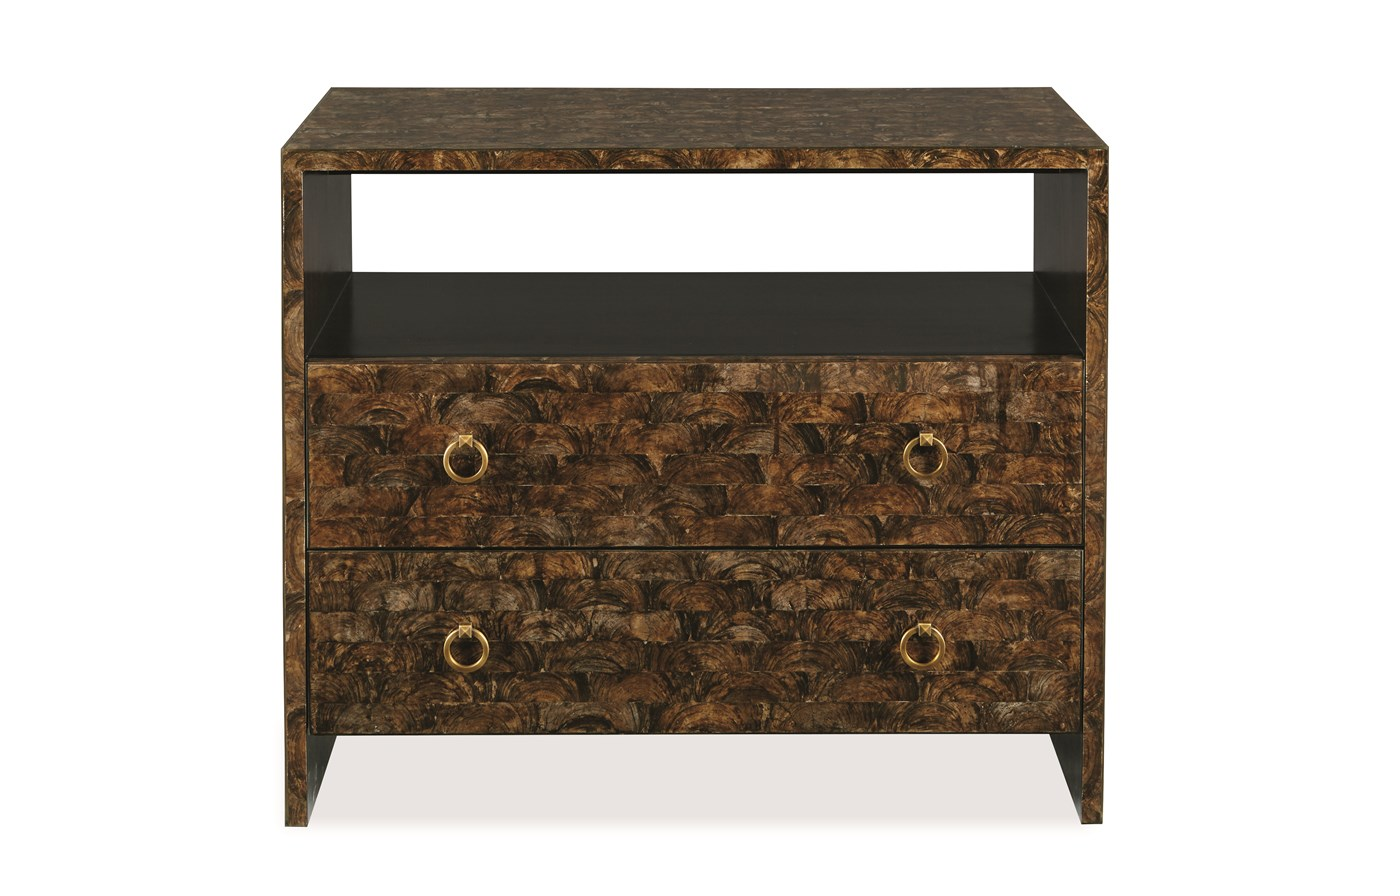 Contessa bachelor 39 s chest nightstands bedroom robb stucky for Robb and stucky bedroom furniture